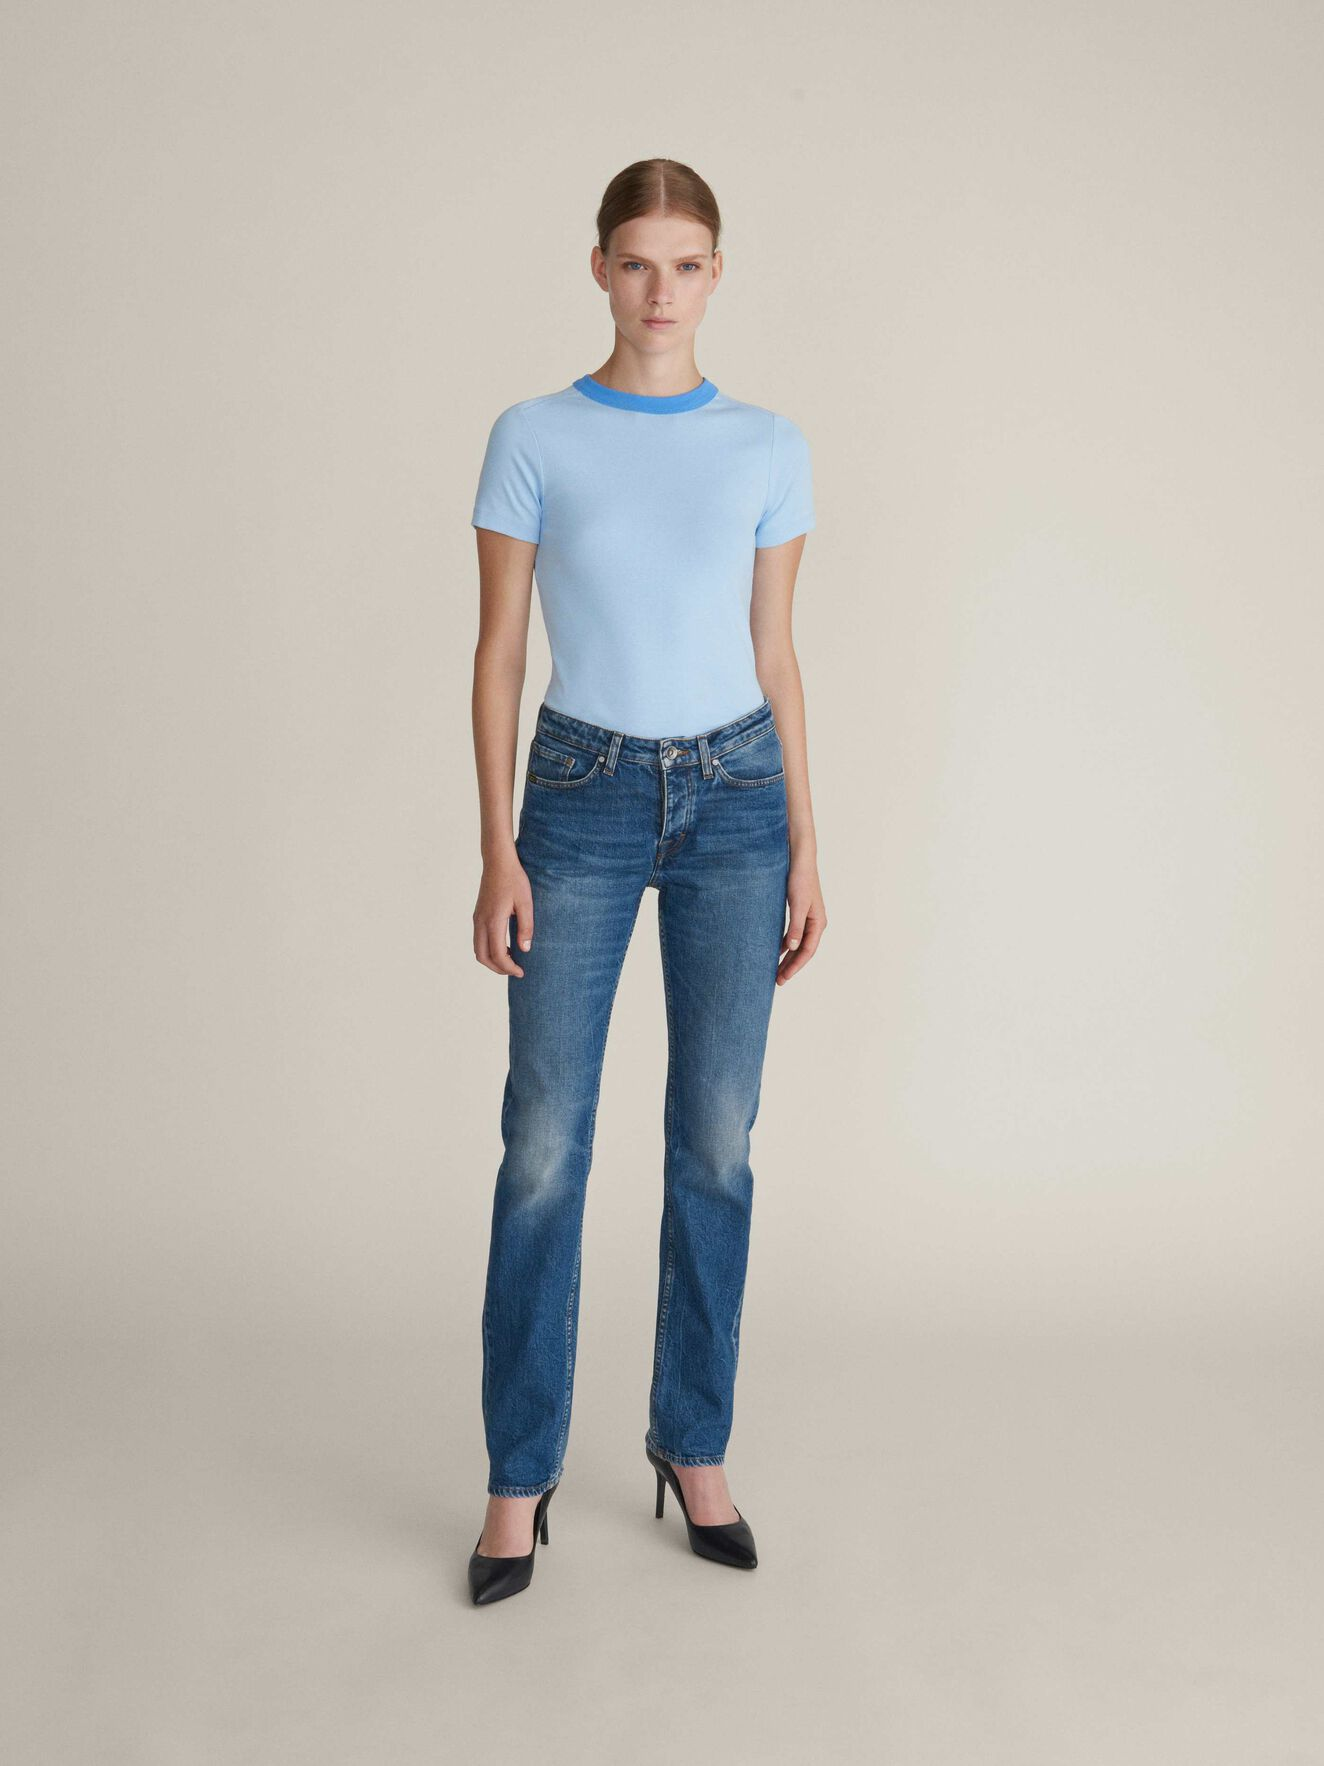 Ellvina T-Shirt in Chambray Blue from Tiger of Sweden